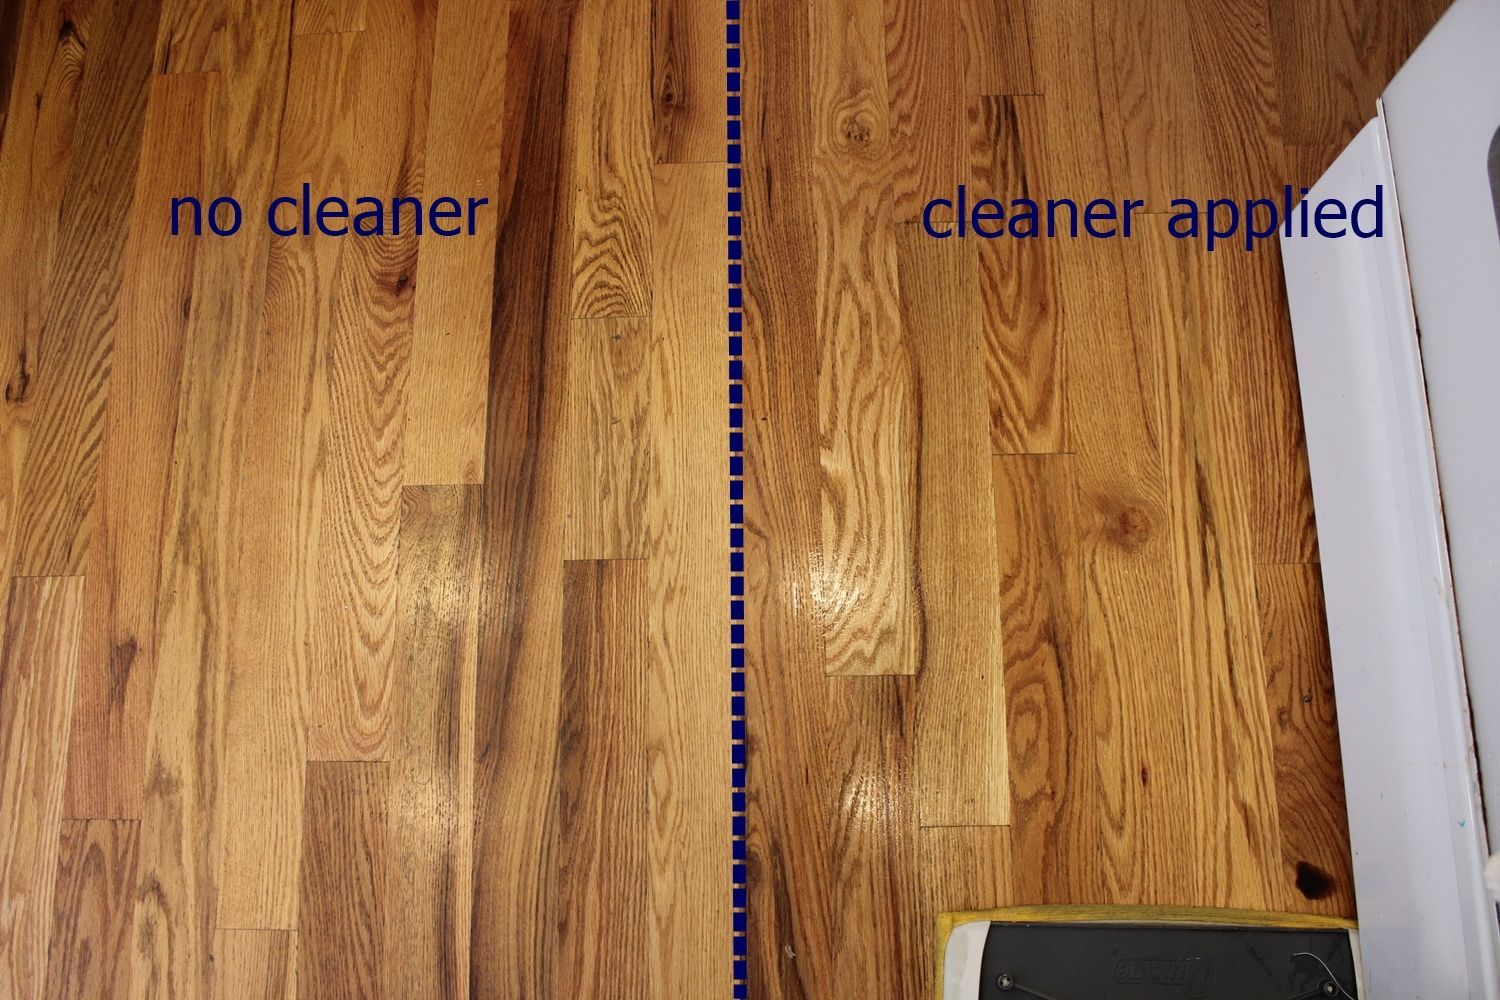 wood to floor mop how tease clean floors hardwood stock home today